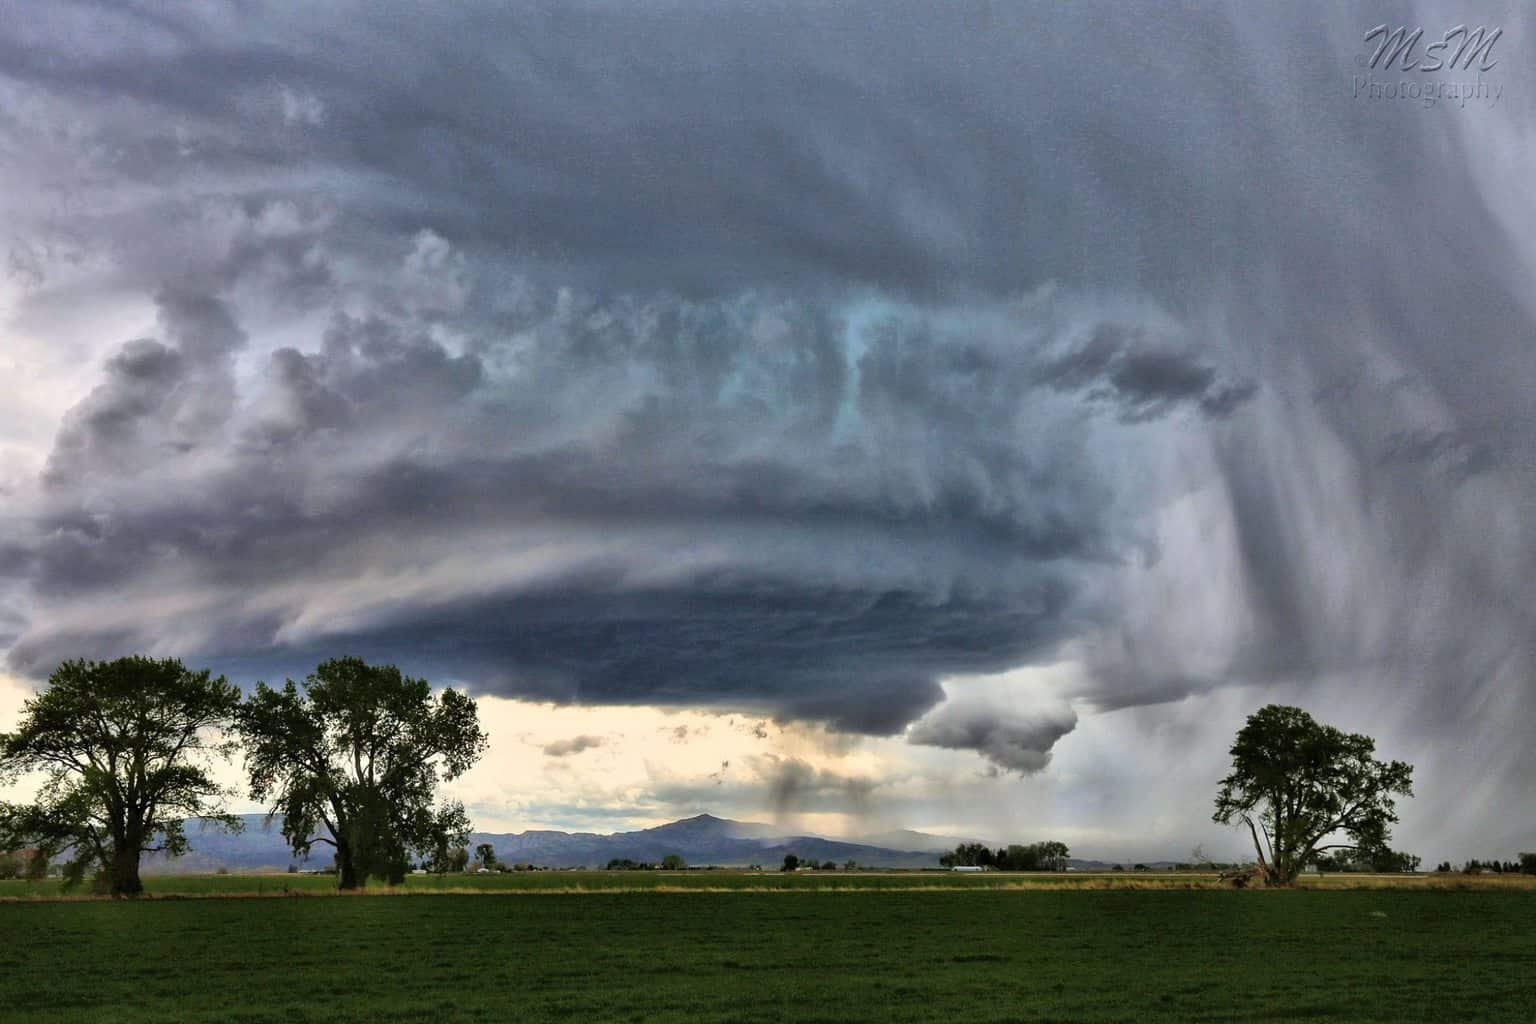 Fast moving storm that came from Cody to Powell, WY today. It dumped a lot of hail in parts of Cody. We don't see cells like this very often in this area! 5/20/16.